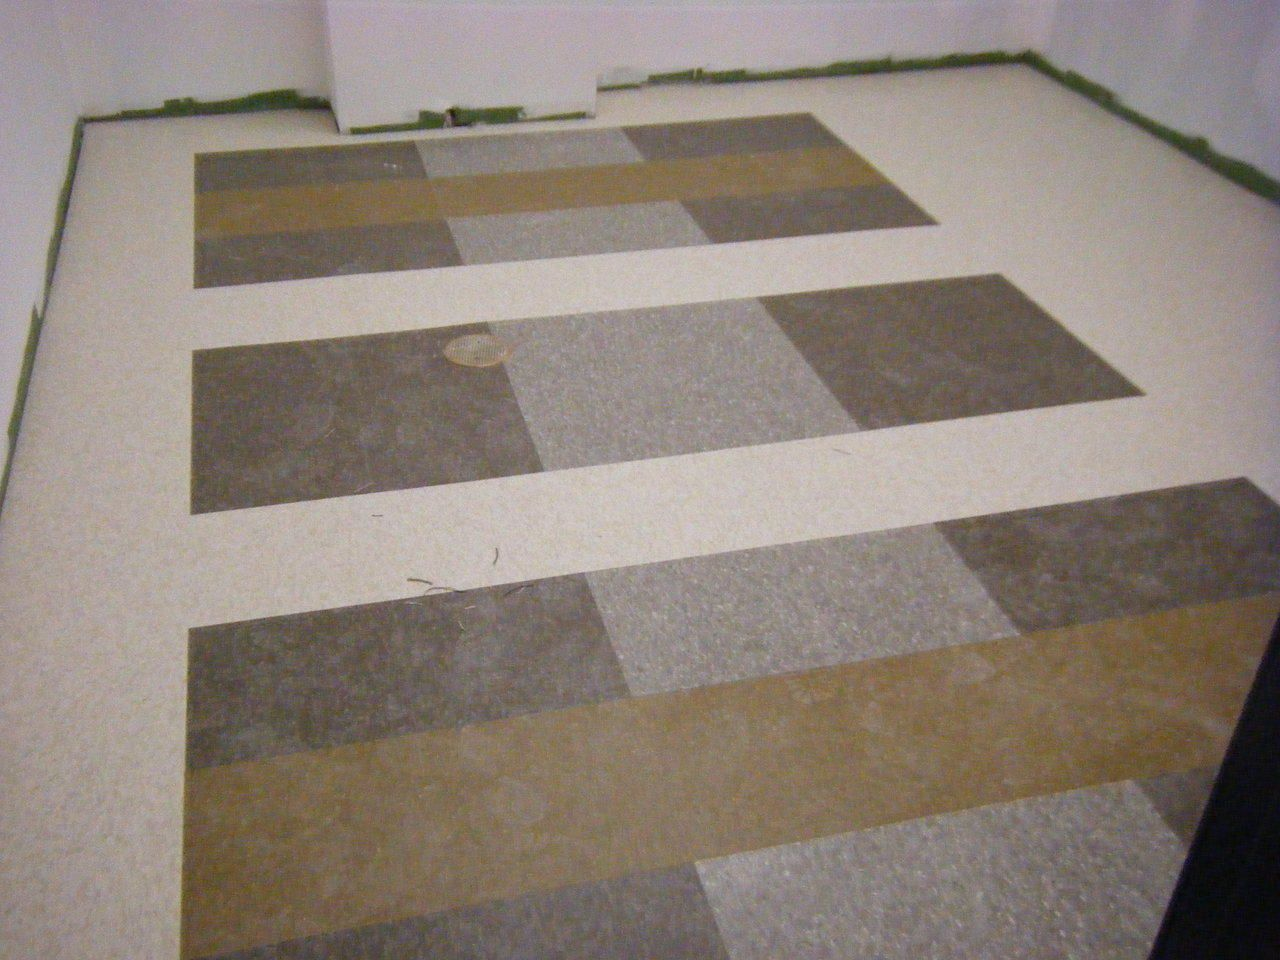 gallery (With images) Floor patterns, Buying carpet